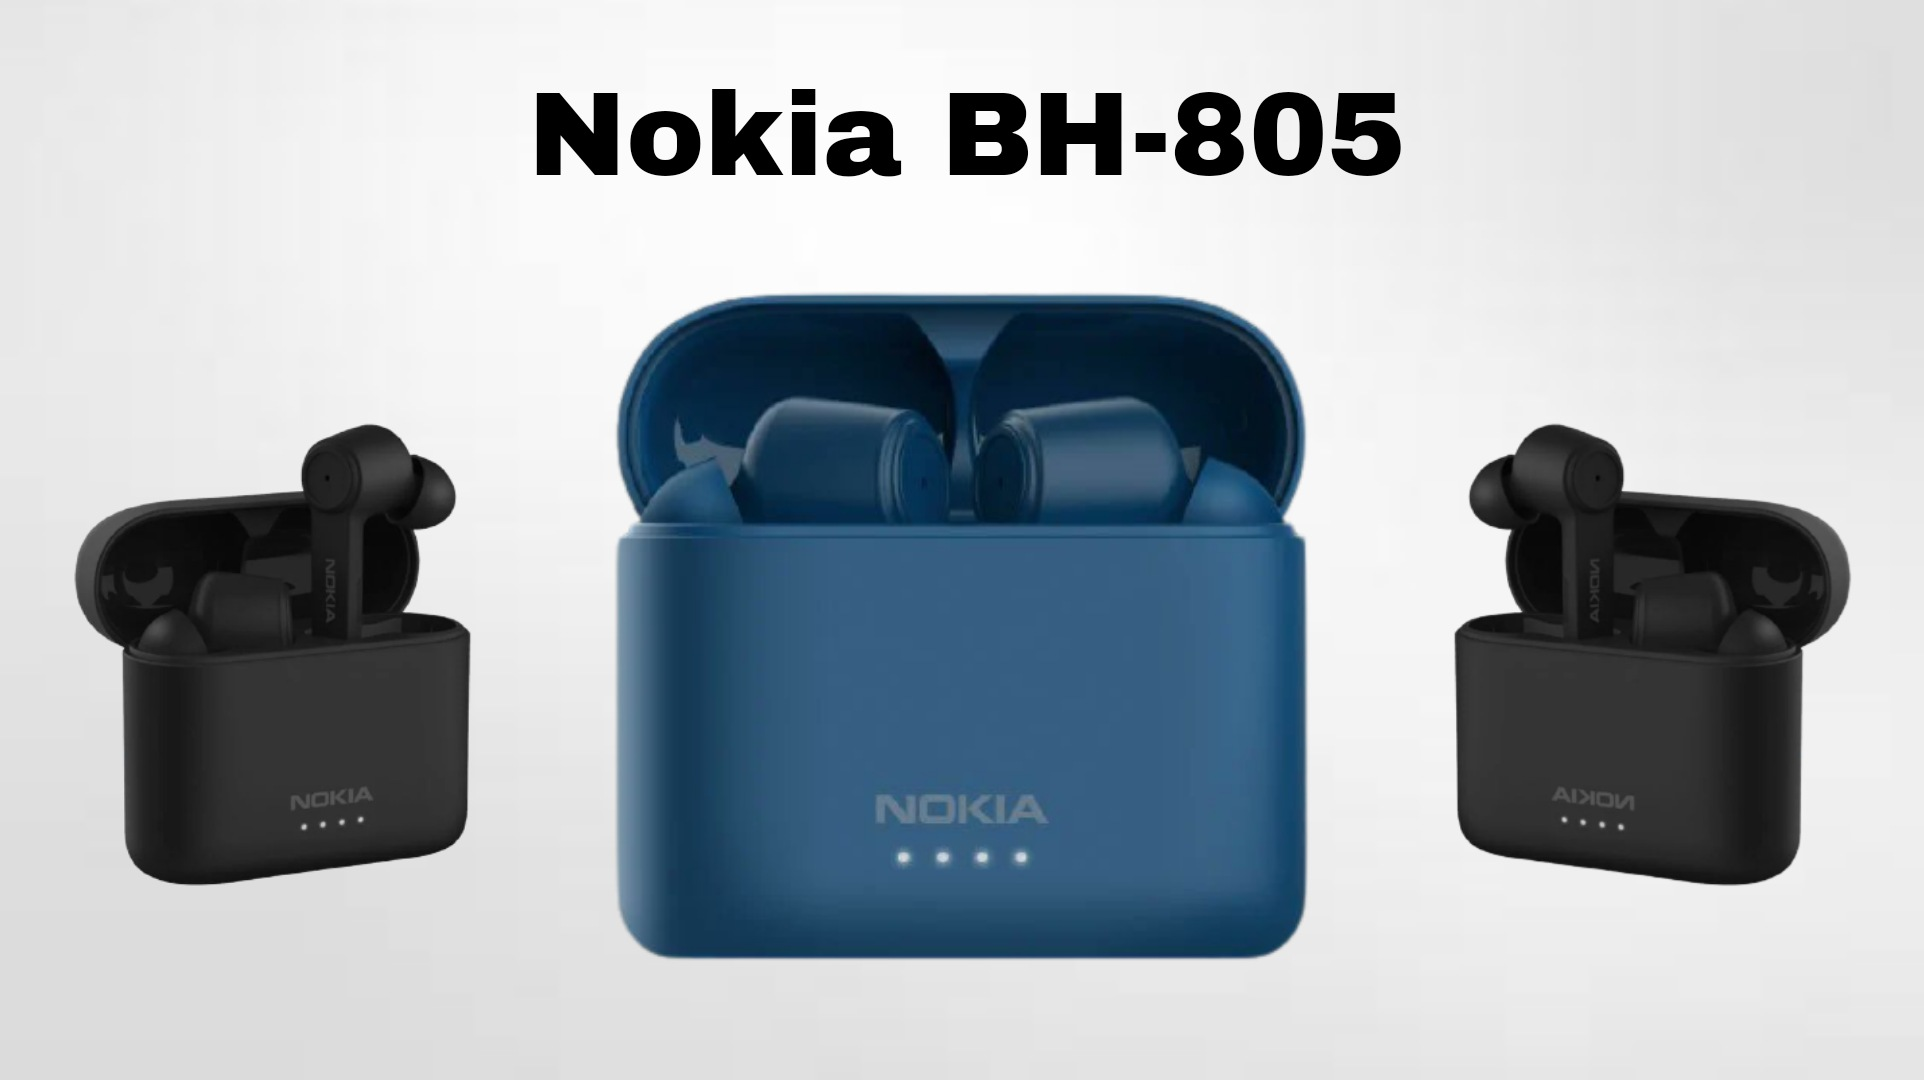 Nokia launches BH-805 noise-canceling TWS earbuds in Europe for 99.99 euros